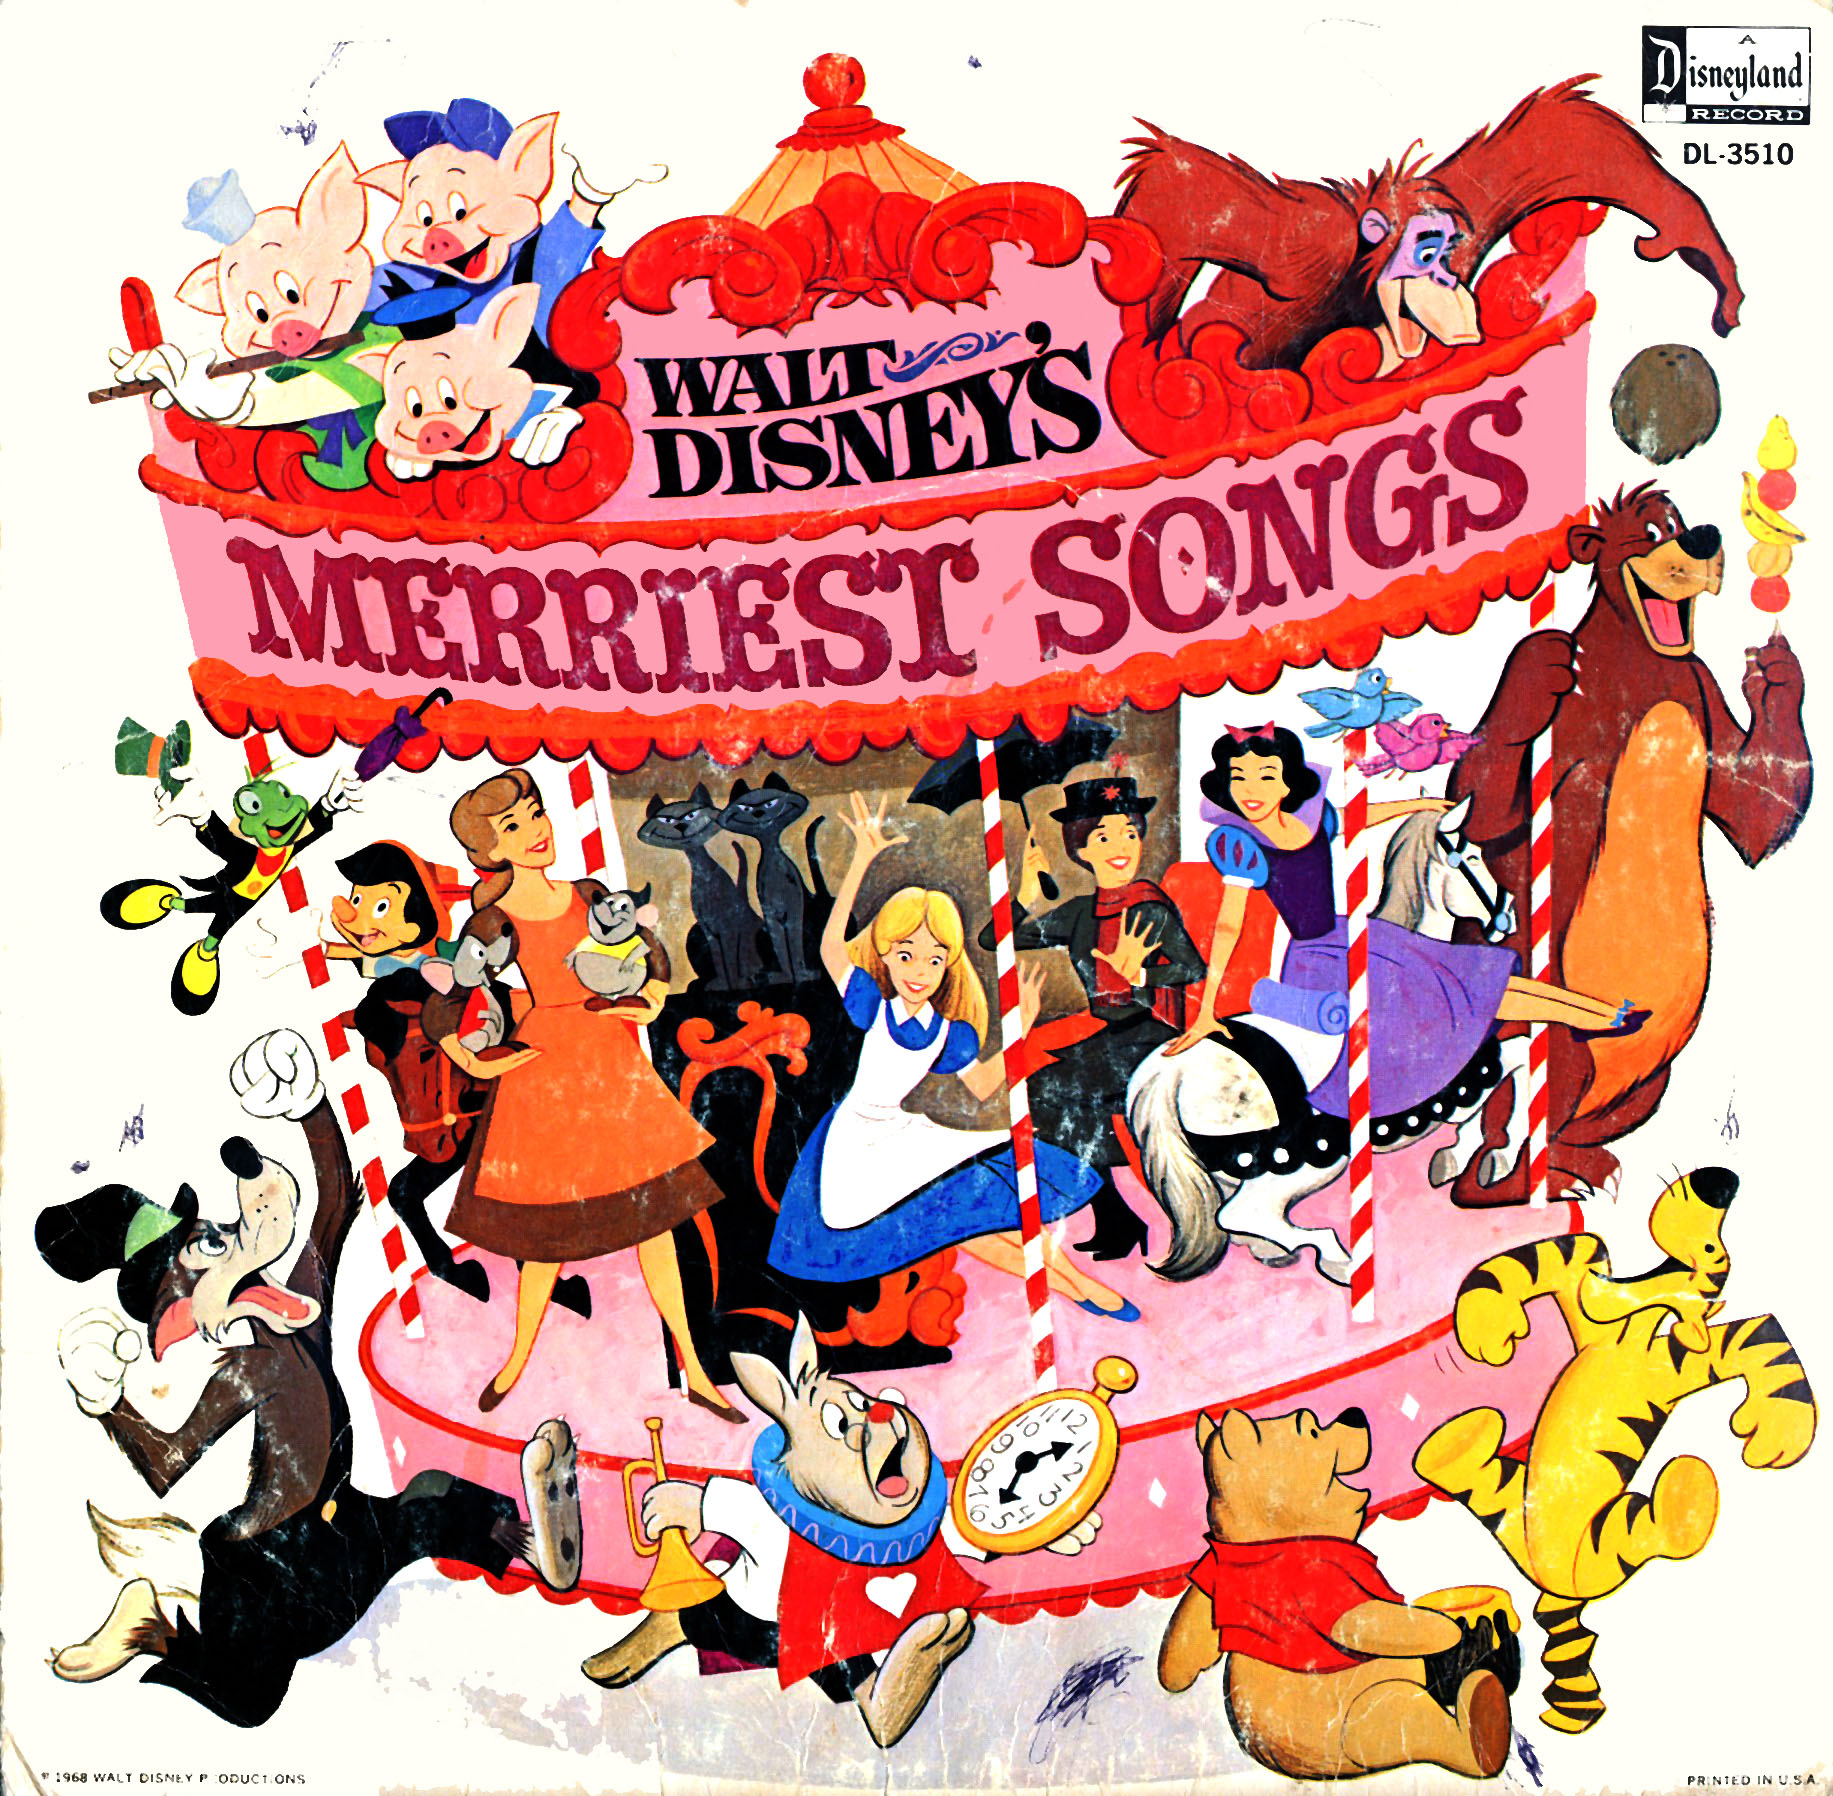 DL3510 - Merriest Songs on CD